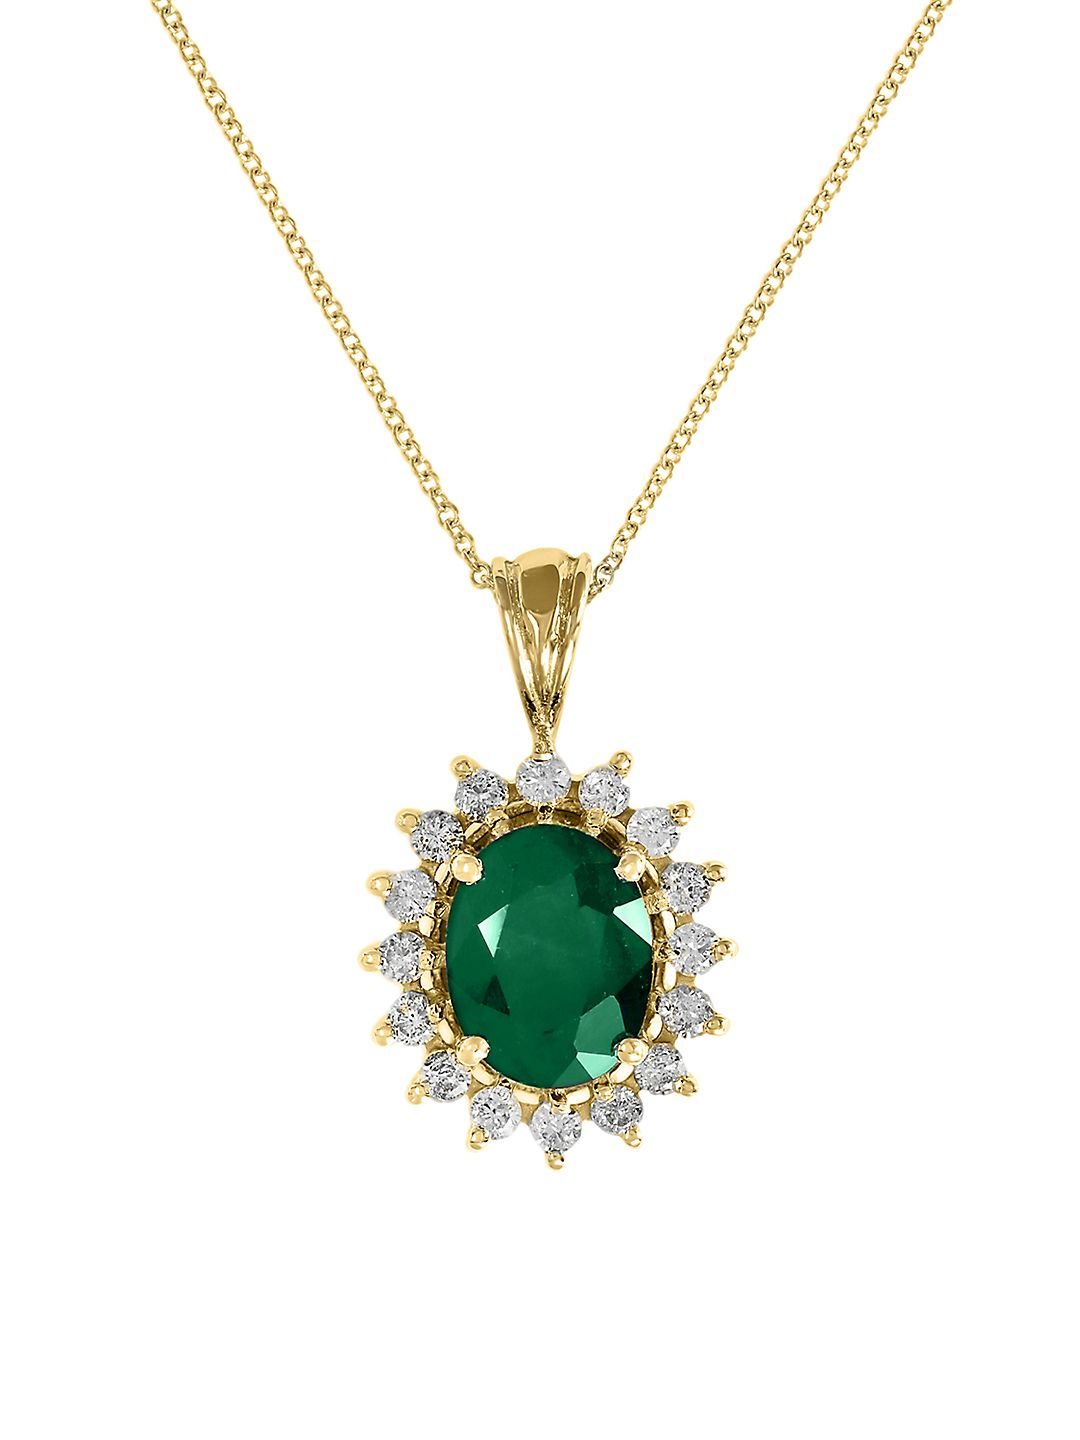 14K Yellow Gold, Diamond and Emerald Pendant Necklace